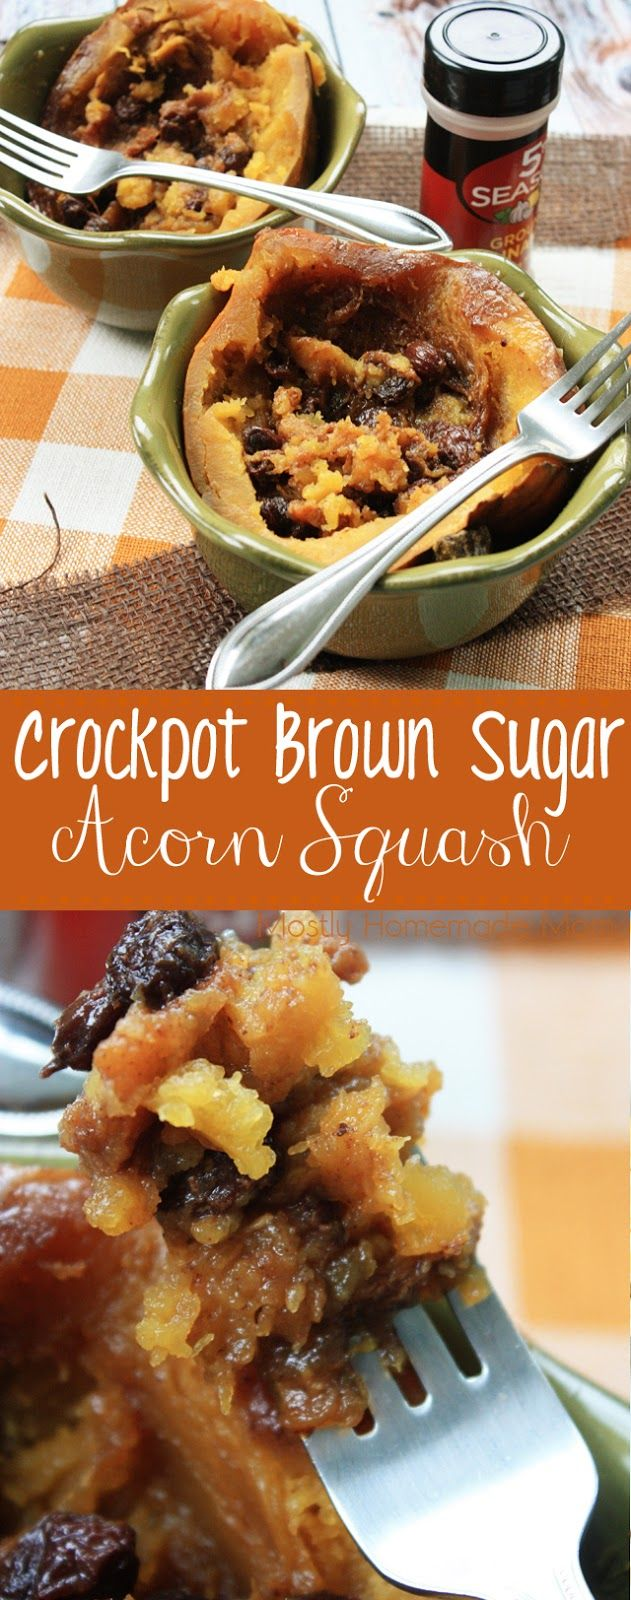 Crockpot Brown Sugar Acorn Squash - the perfect fall side dish recipe! Halved acorn squash, filled with brown sugar and raisins, and slow cooked until sweet and buttery!